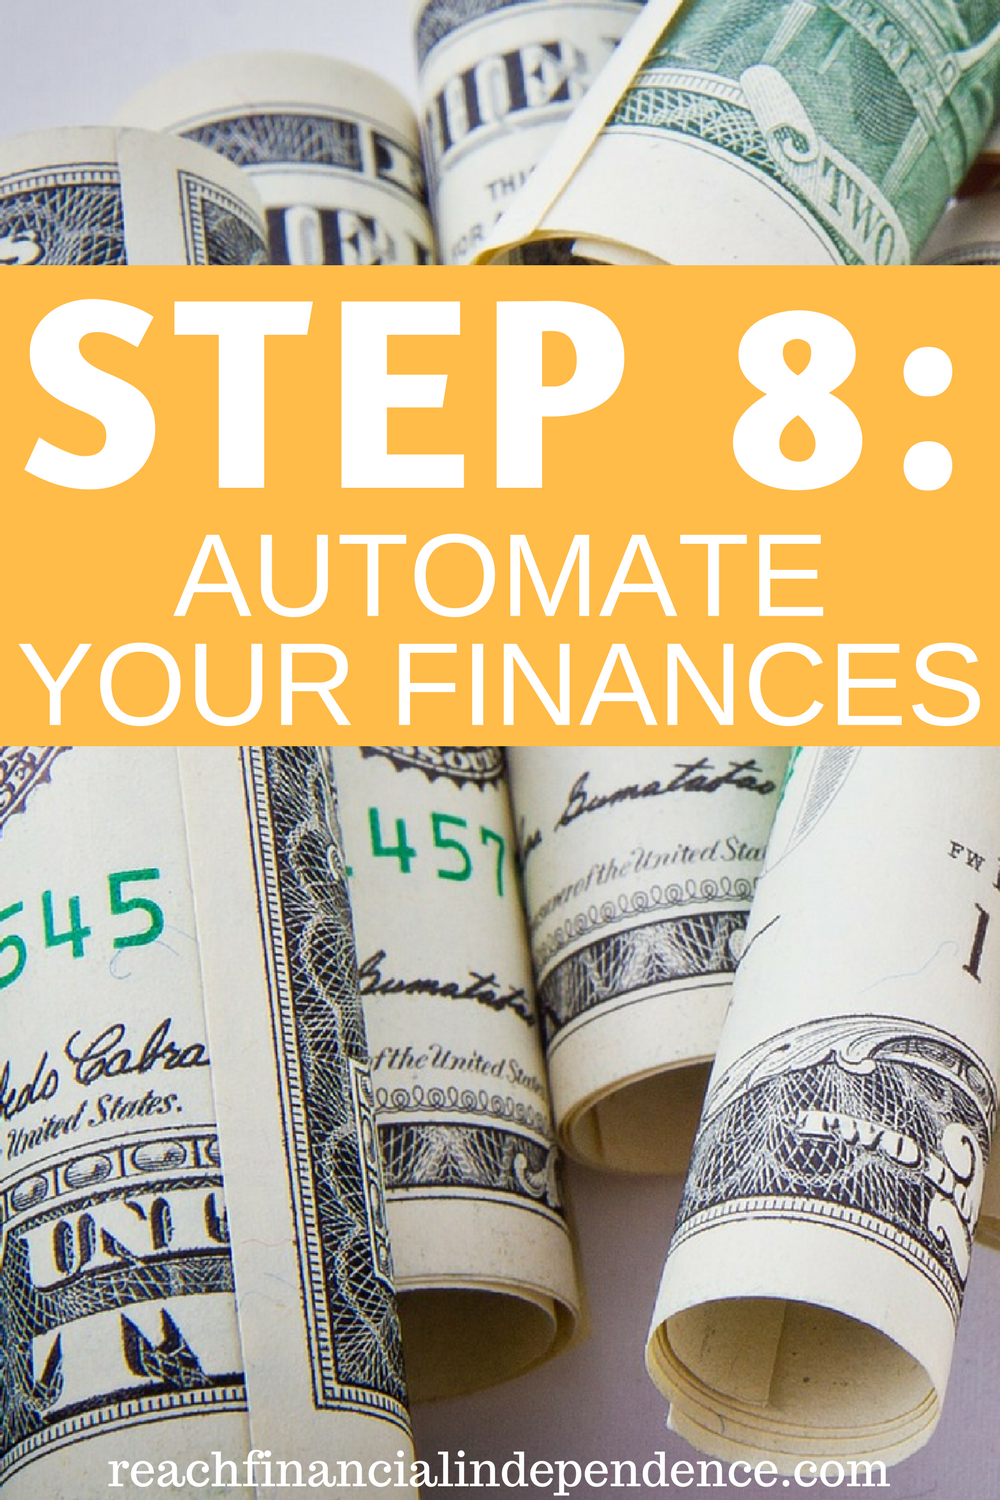 STEP 8: AUTOMATE YOUR FINANCES. This post is part of a 30 days series called the 30 steps program to financial independence.